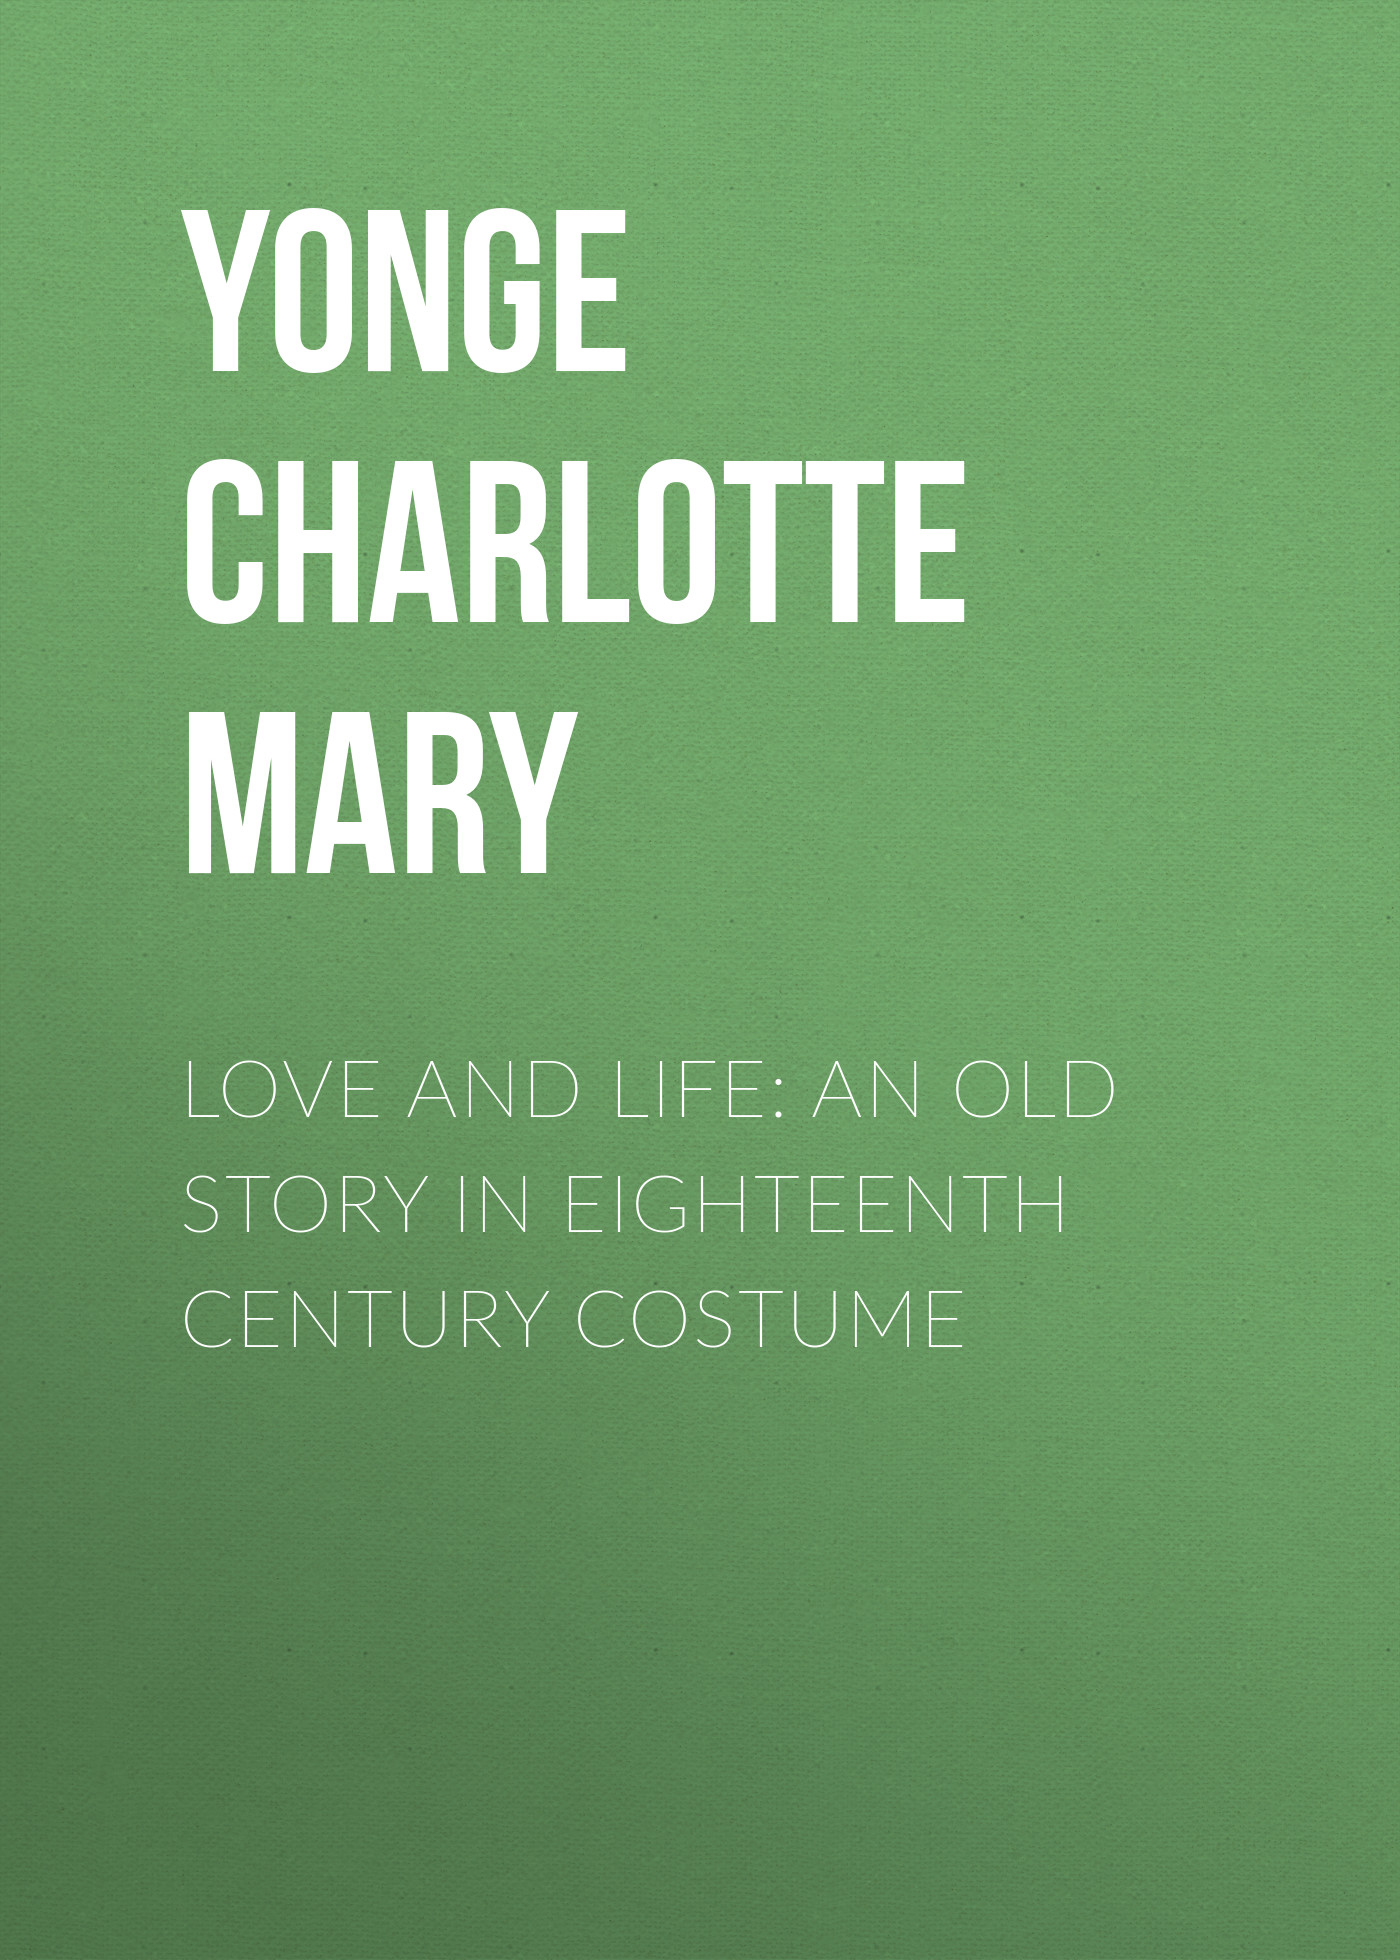 Yonge Charlotte Mary Love and Life: An Old Story in Eighteenth Century Costume charlotte lamb falling in love